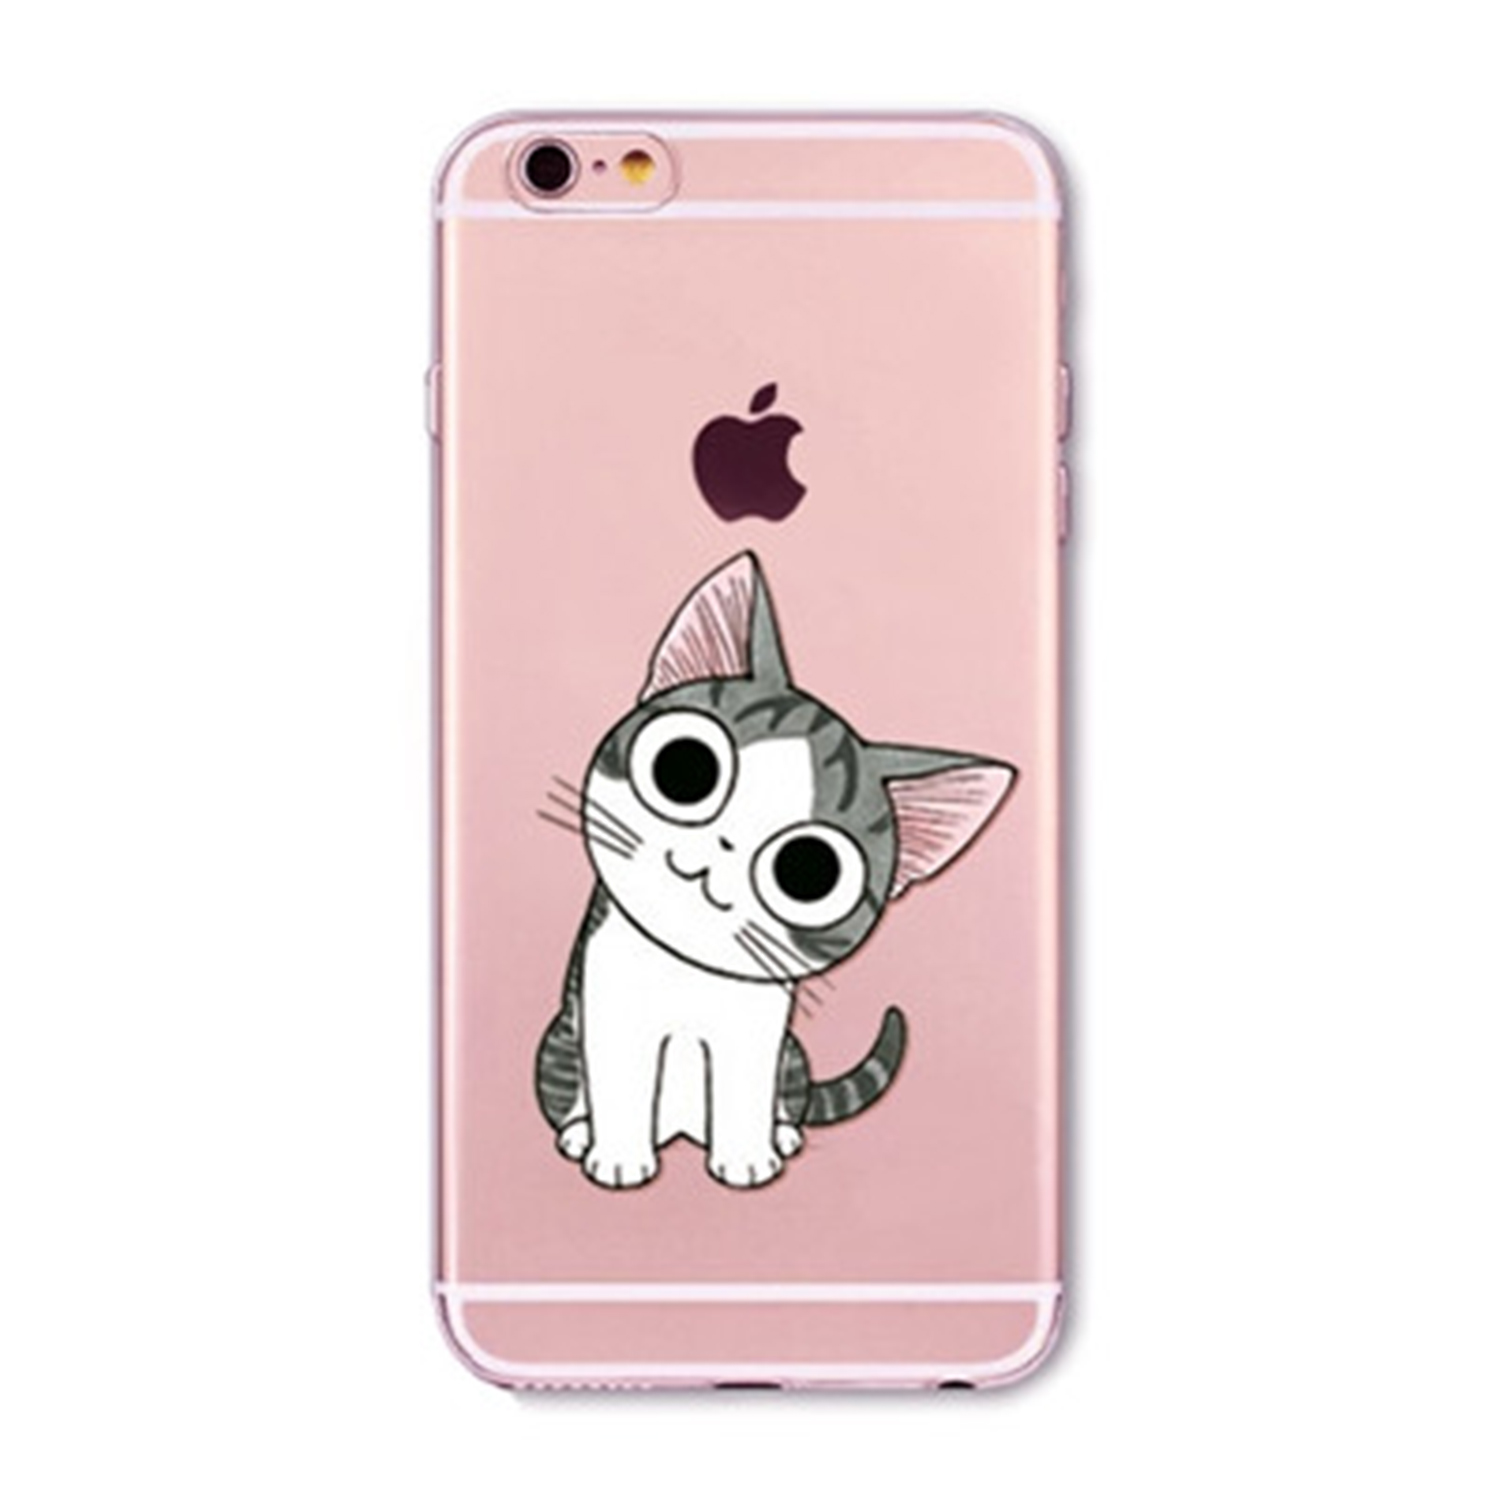 Kritzel Case für iPhone 6 / 6s - Kitty Collection #376